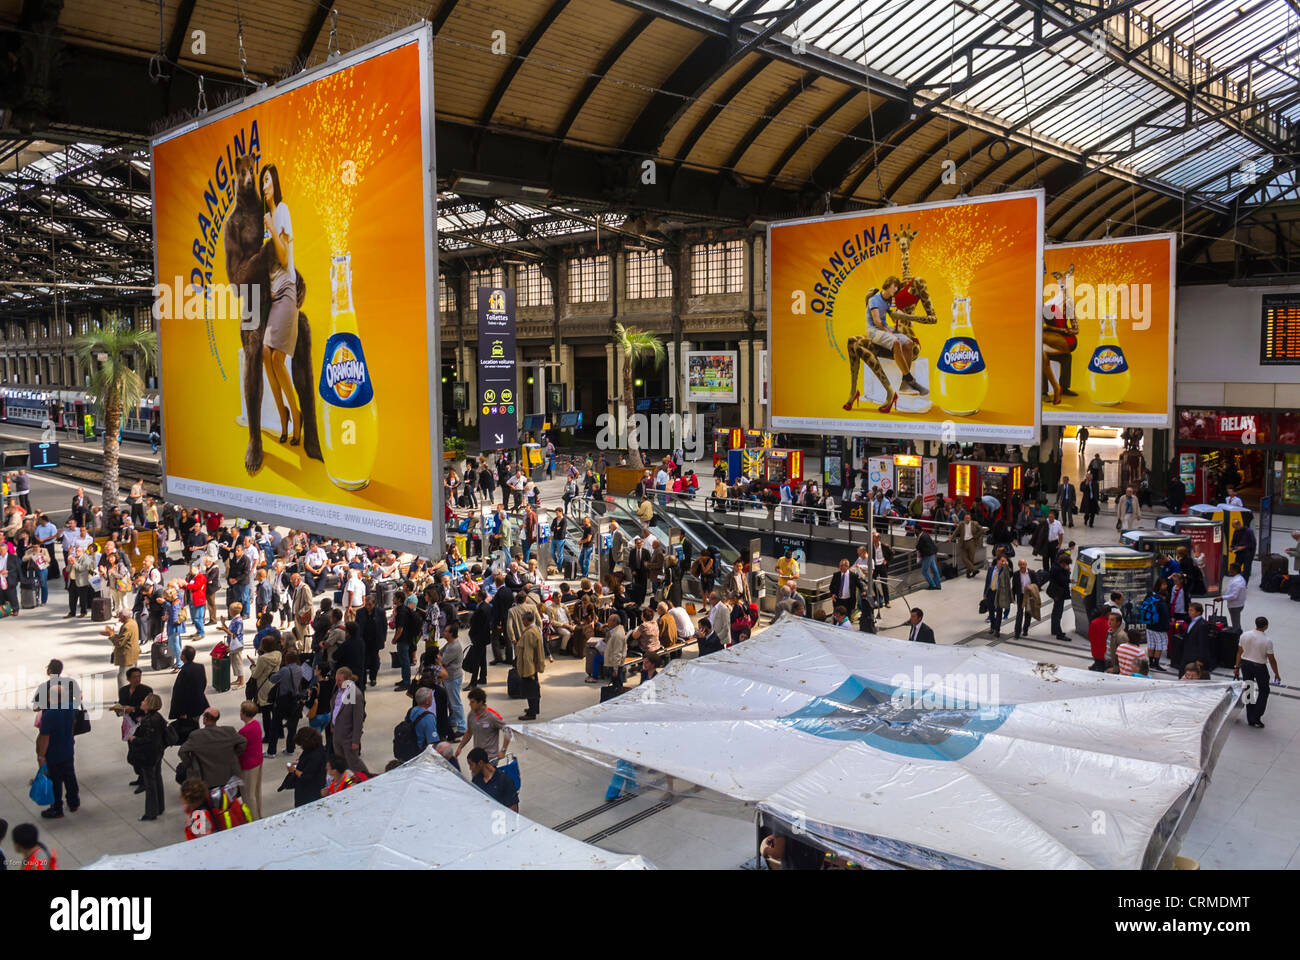 """Paris, France, High Angle, Aerial View of Crowds, French Soft drink Advertising Billboards in Train Station, """"Gare Stock Photo"""